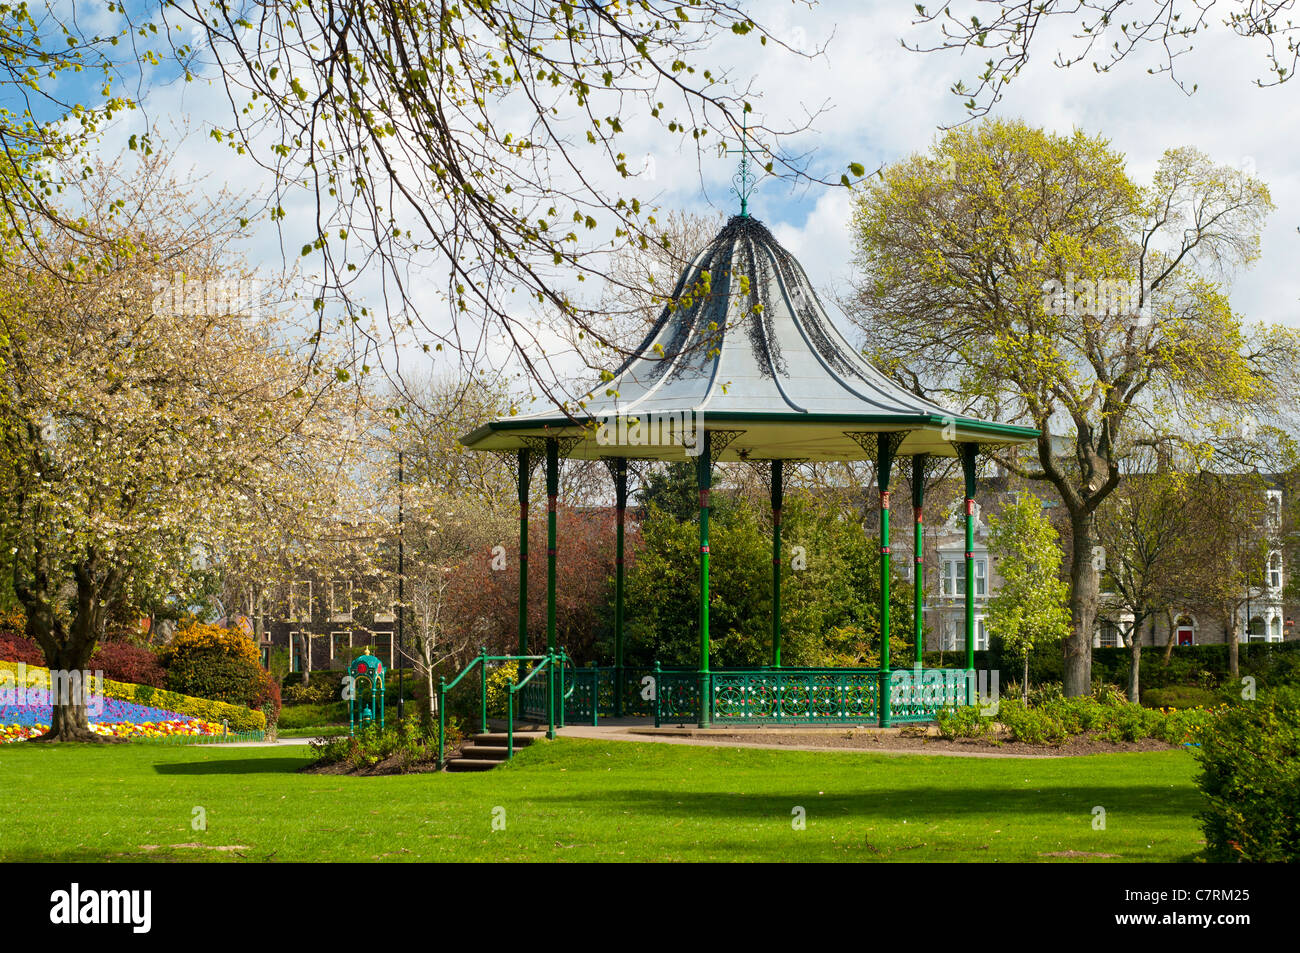 bandstand in spring - Stock Image